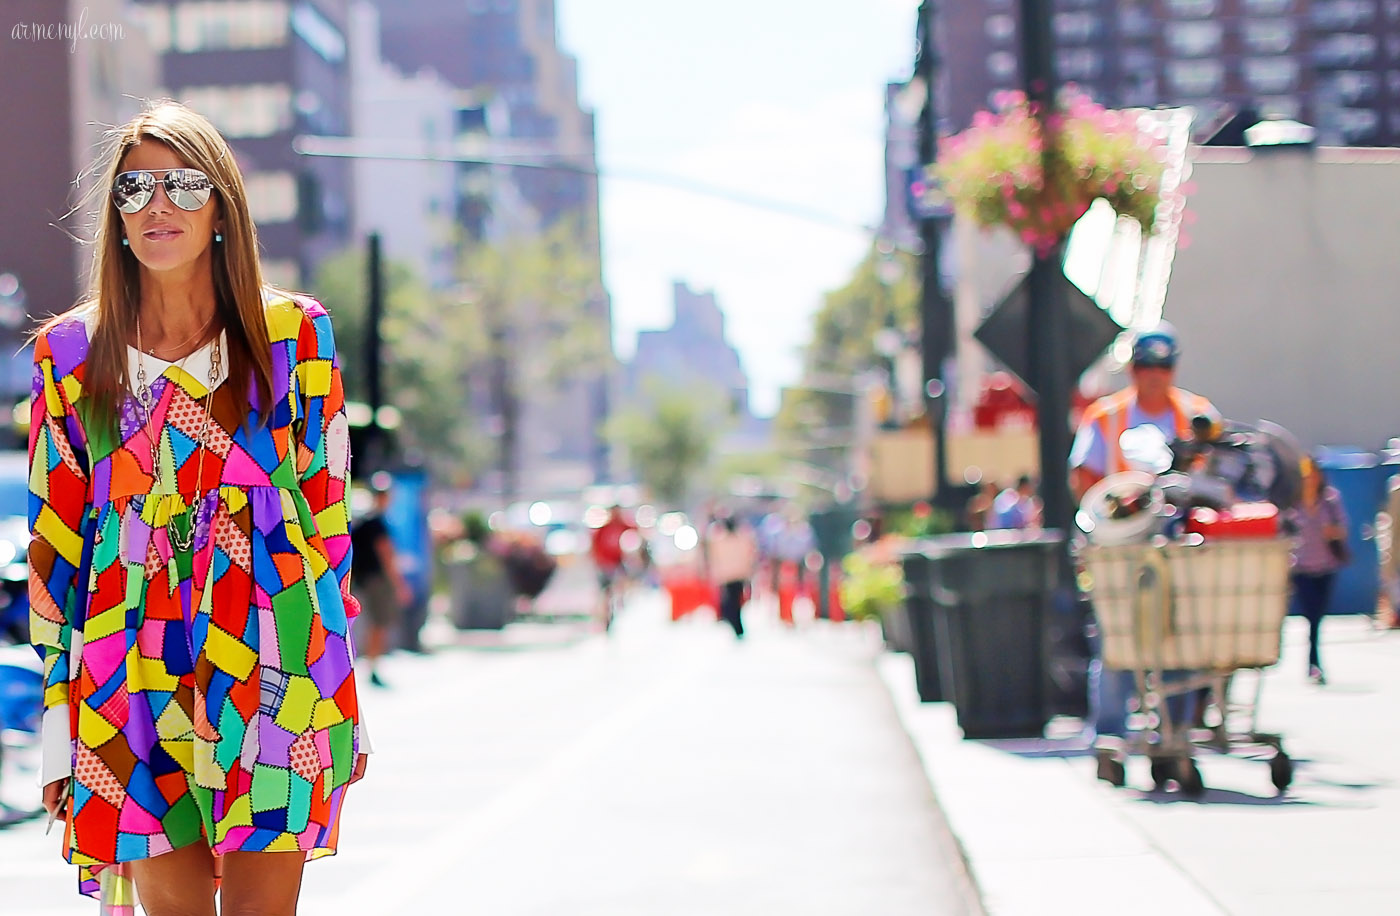 Anna Dello Russo at NYFW 2015 by Fashion Photographer Armenyl.com-3